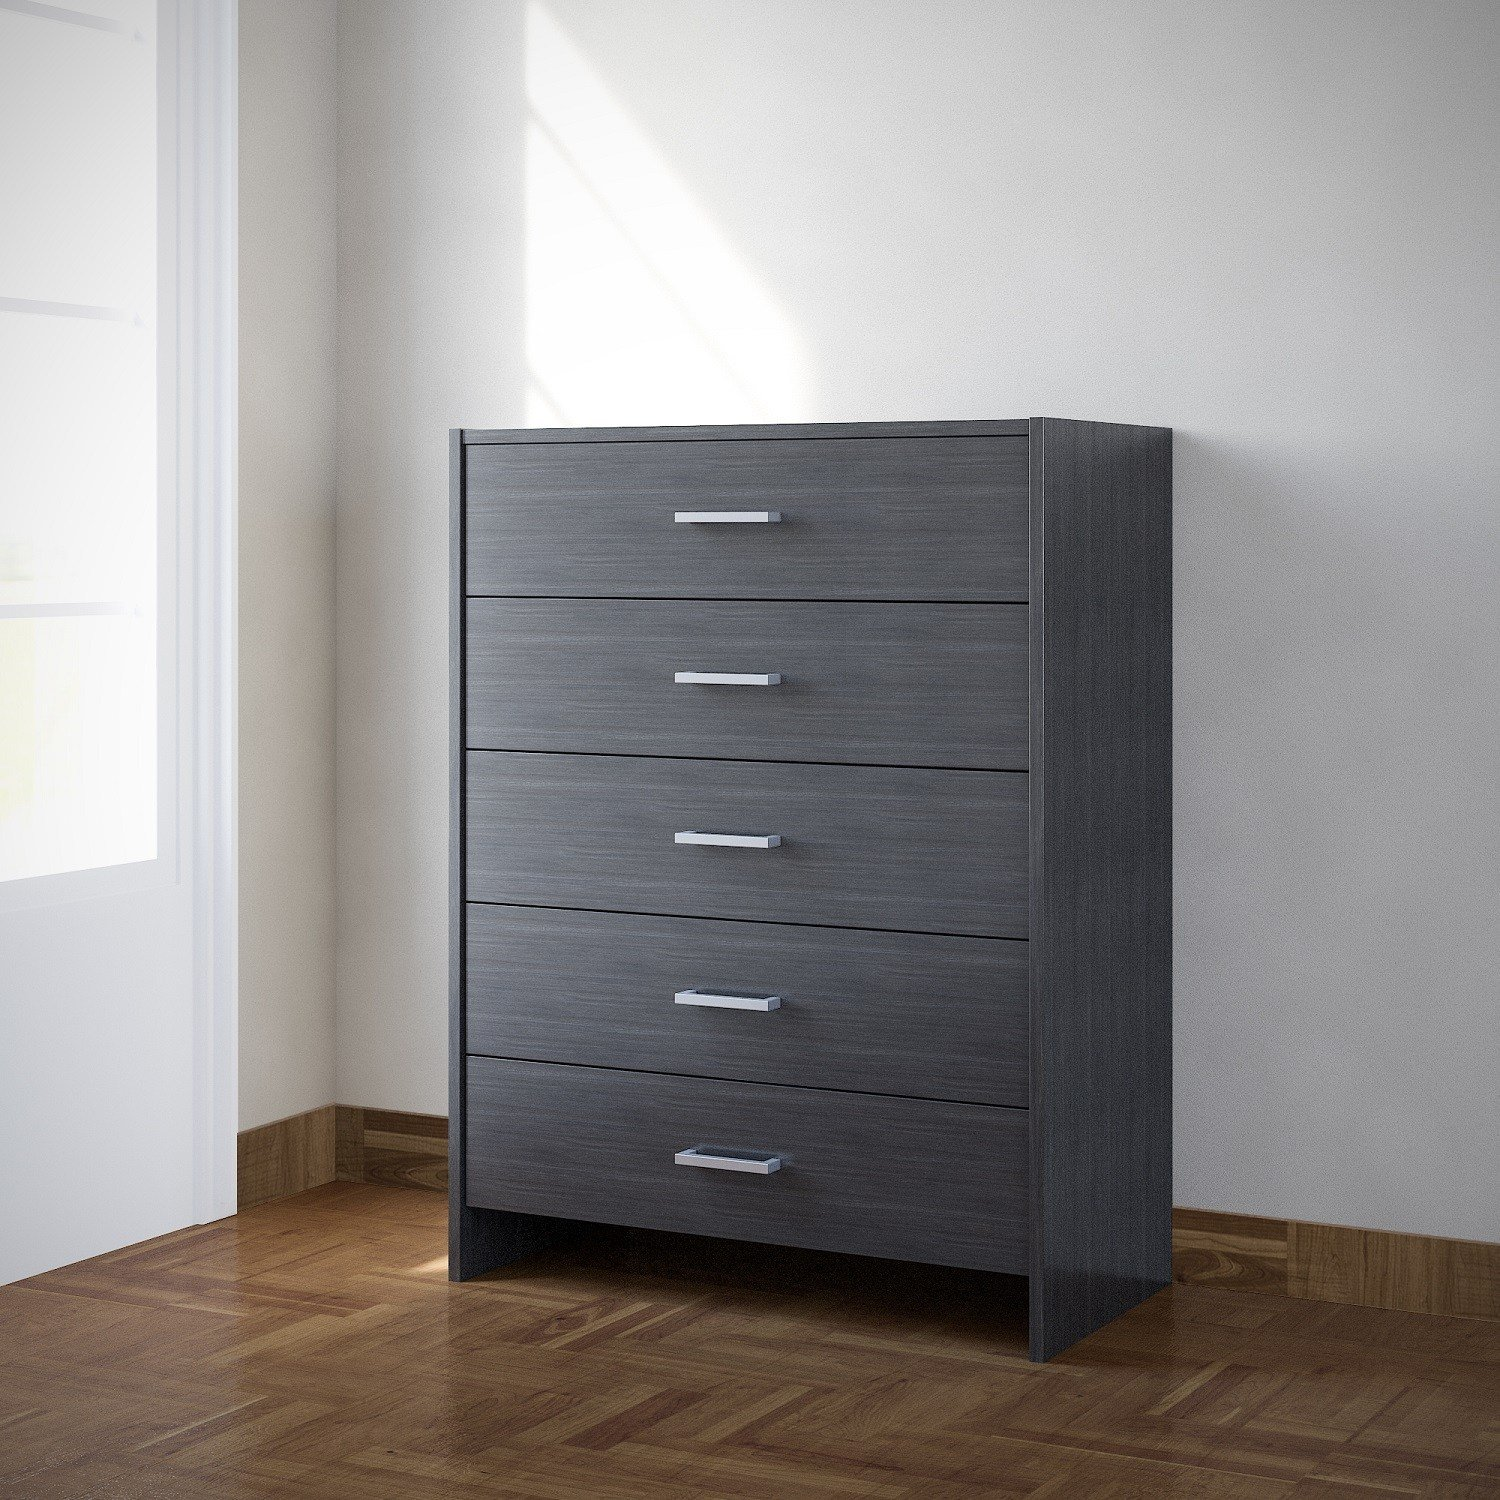 Best Chest Of Drawers Black Bedroom Furniture 5 Drawer Metal With Pictures